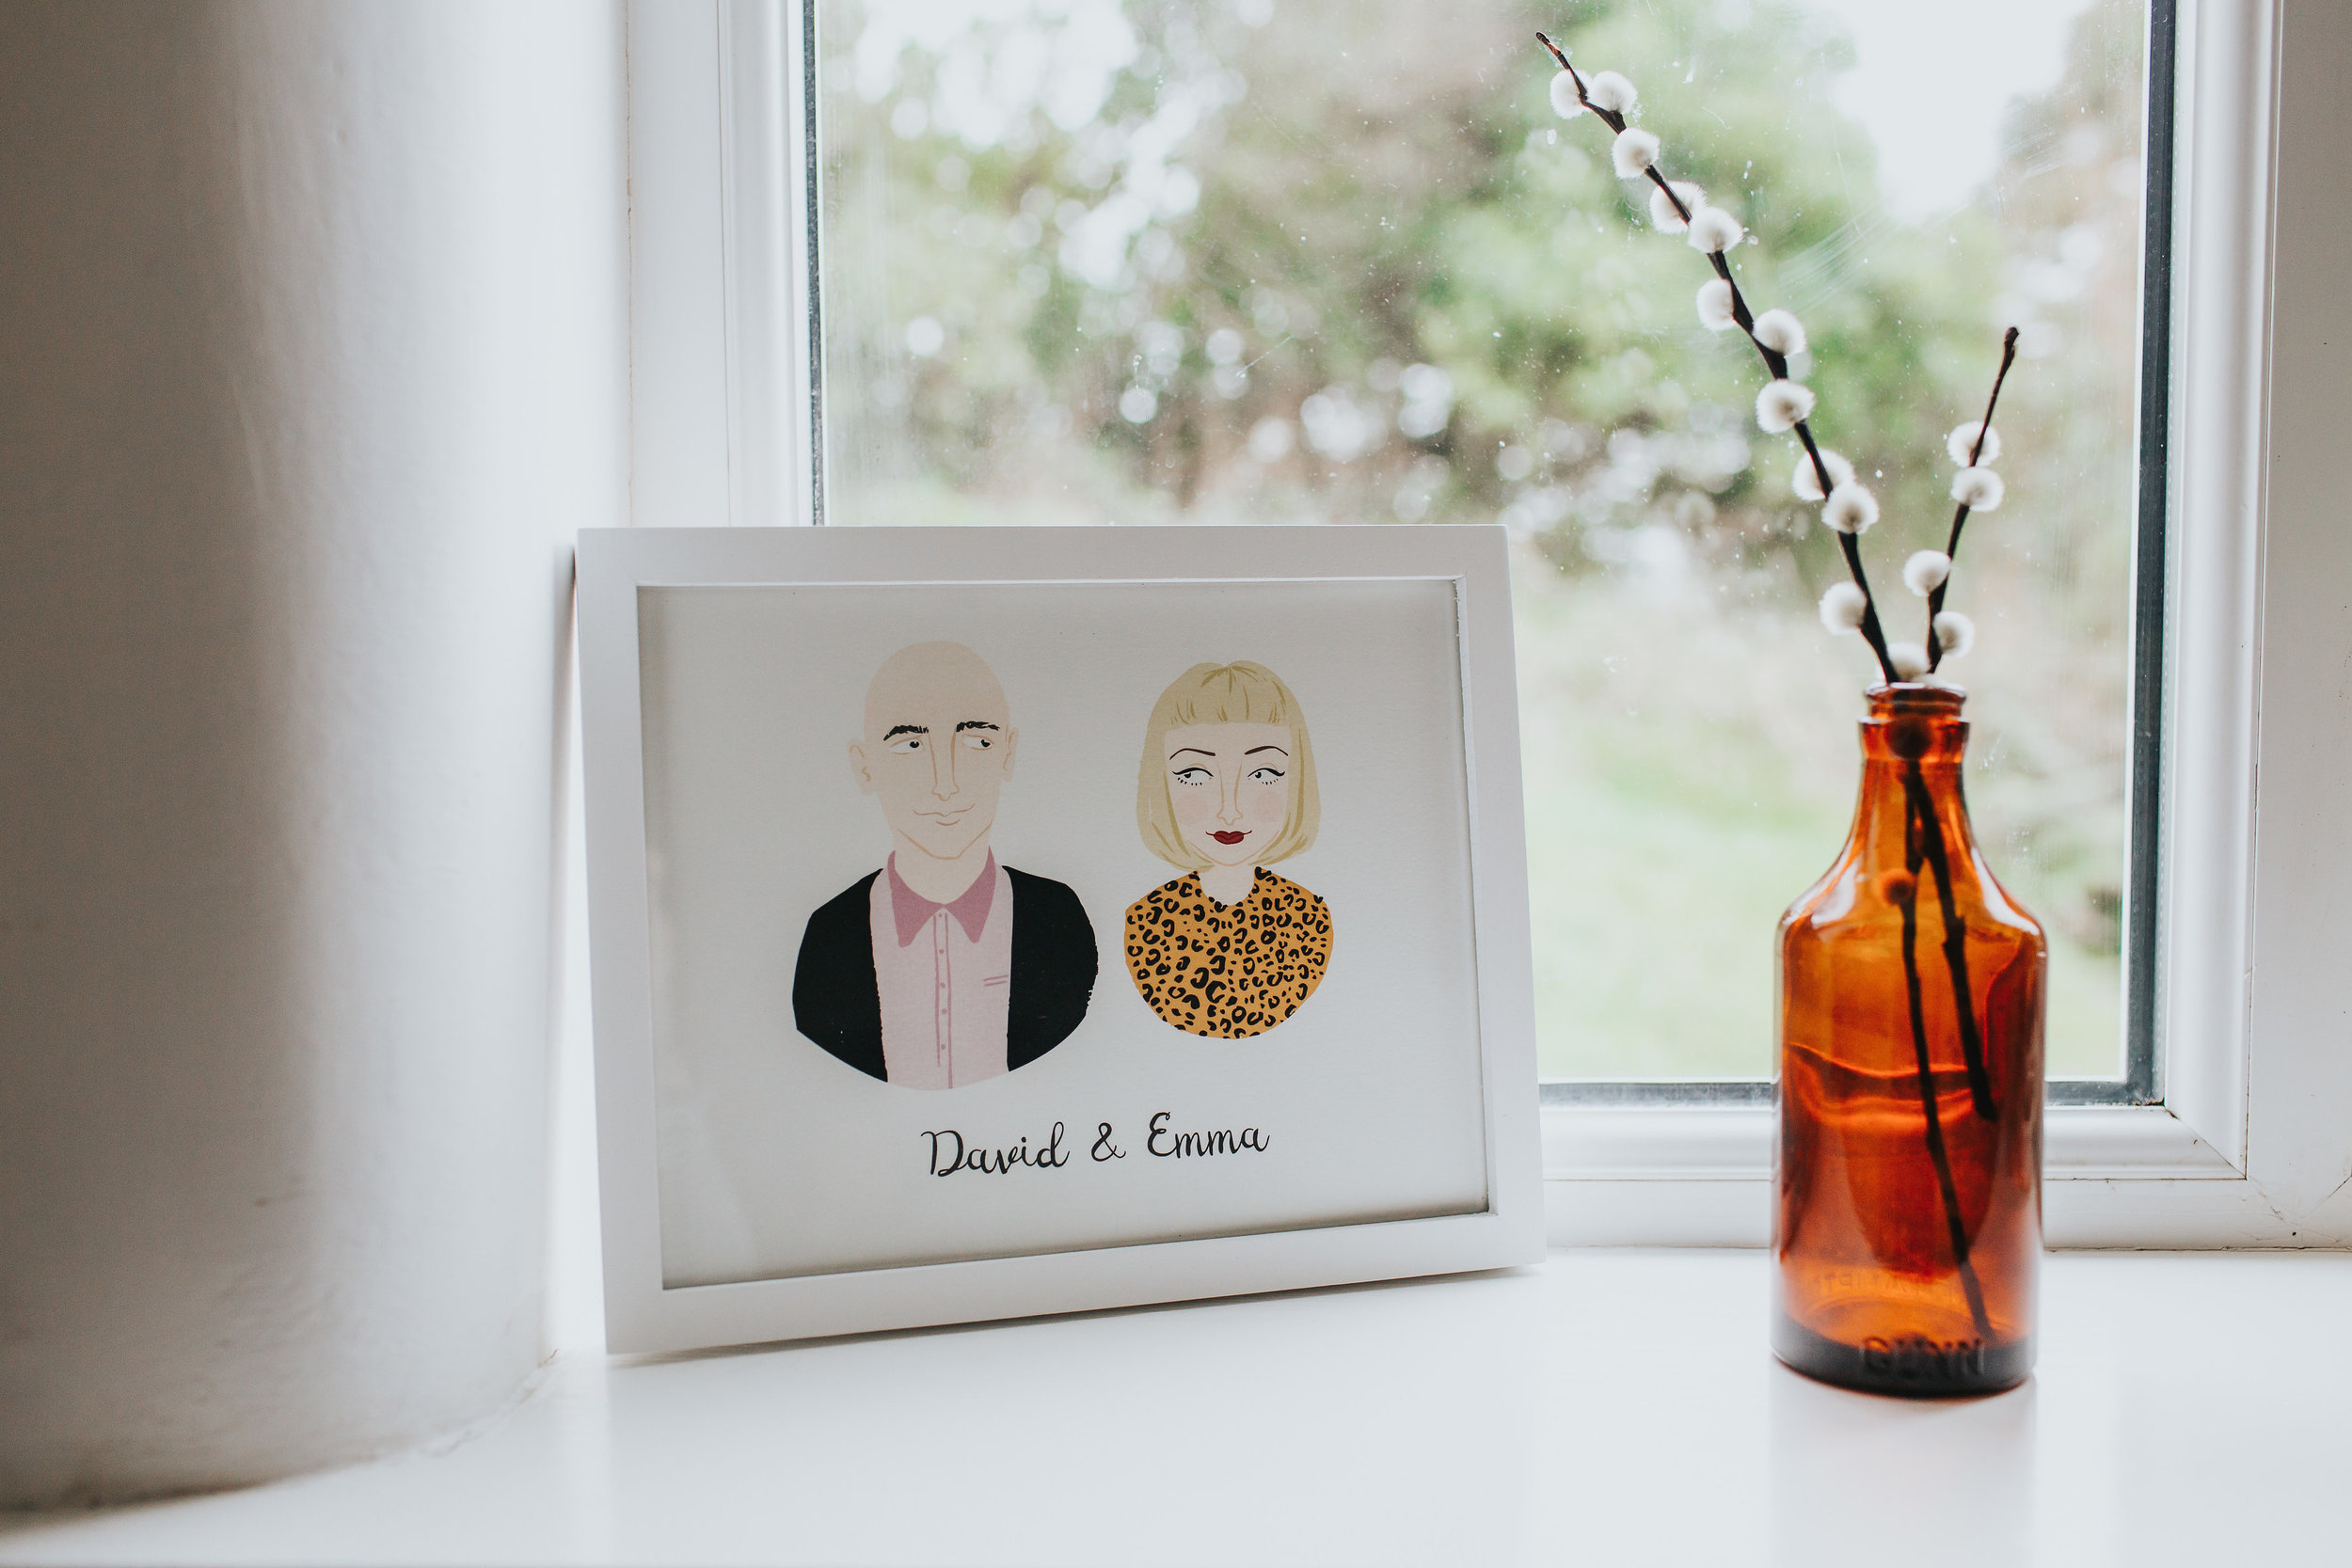 Bespoke Illustrated Portrait Couple Print  - £75, available from  notonthehighsteet.com  Product code: 665725